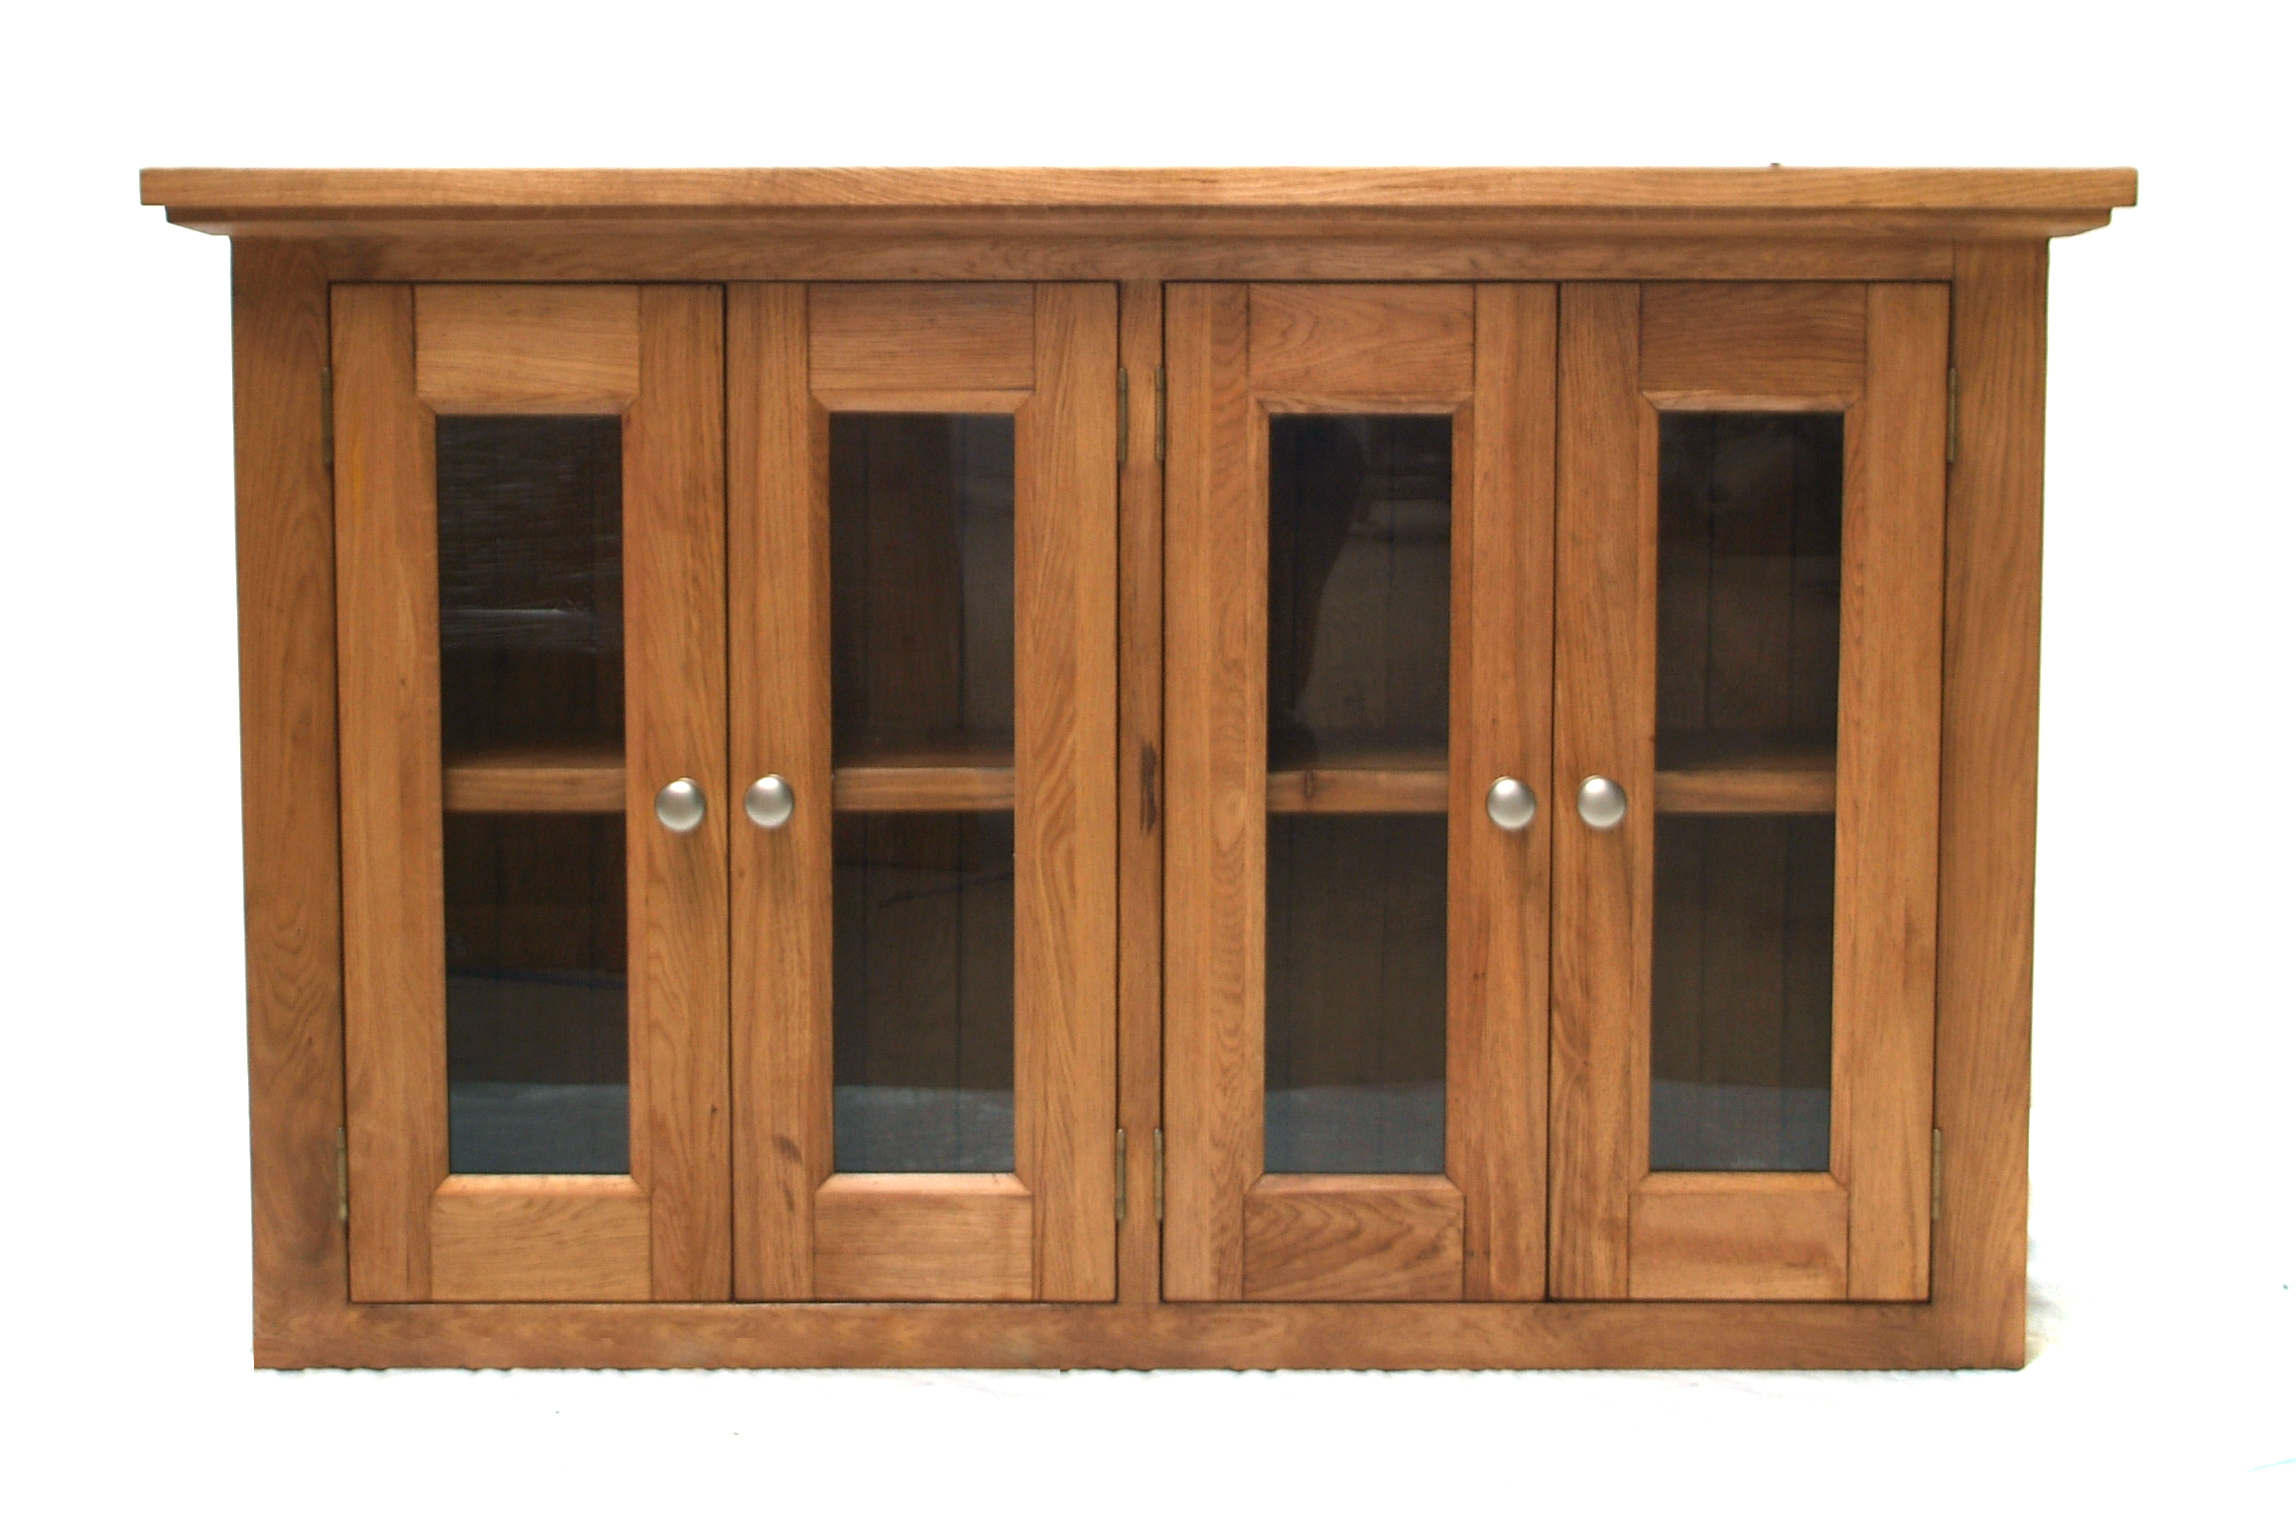 1520 #996132 Evelyn Double Wall Cabinet 4 Glass Doors Simply Stunning Furniture image Double Glazed Kitchen Doors 4932296